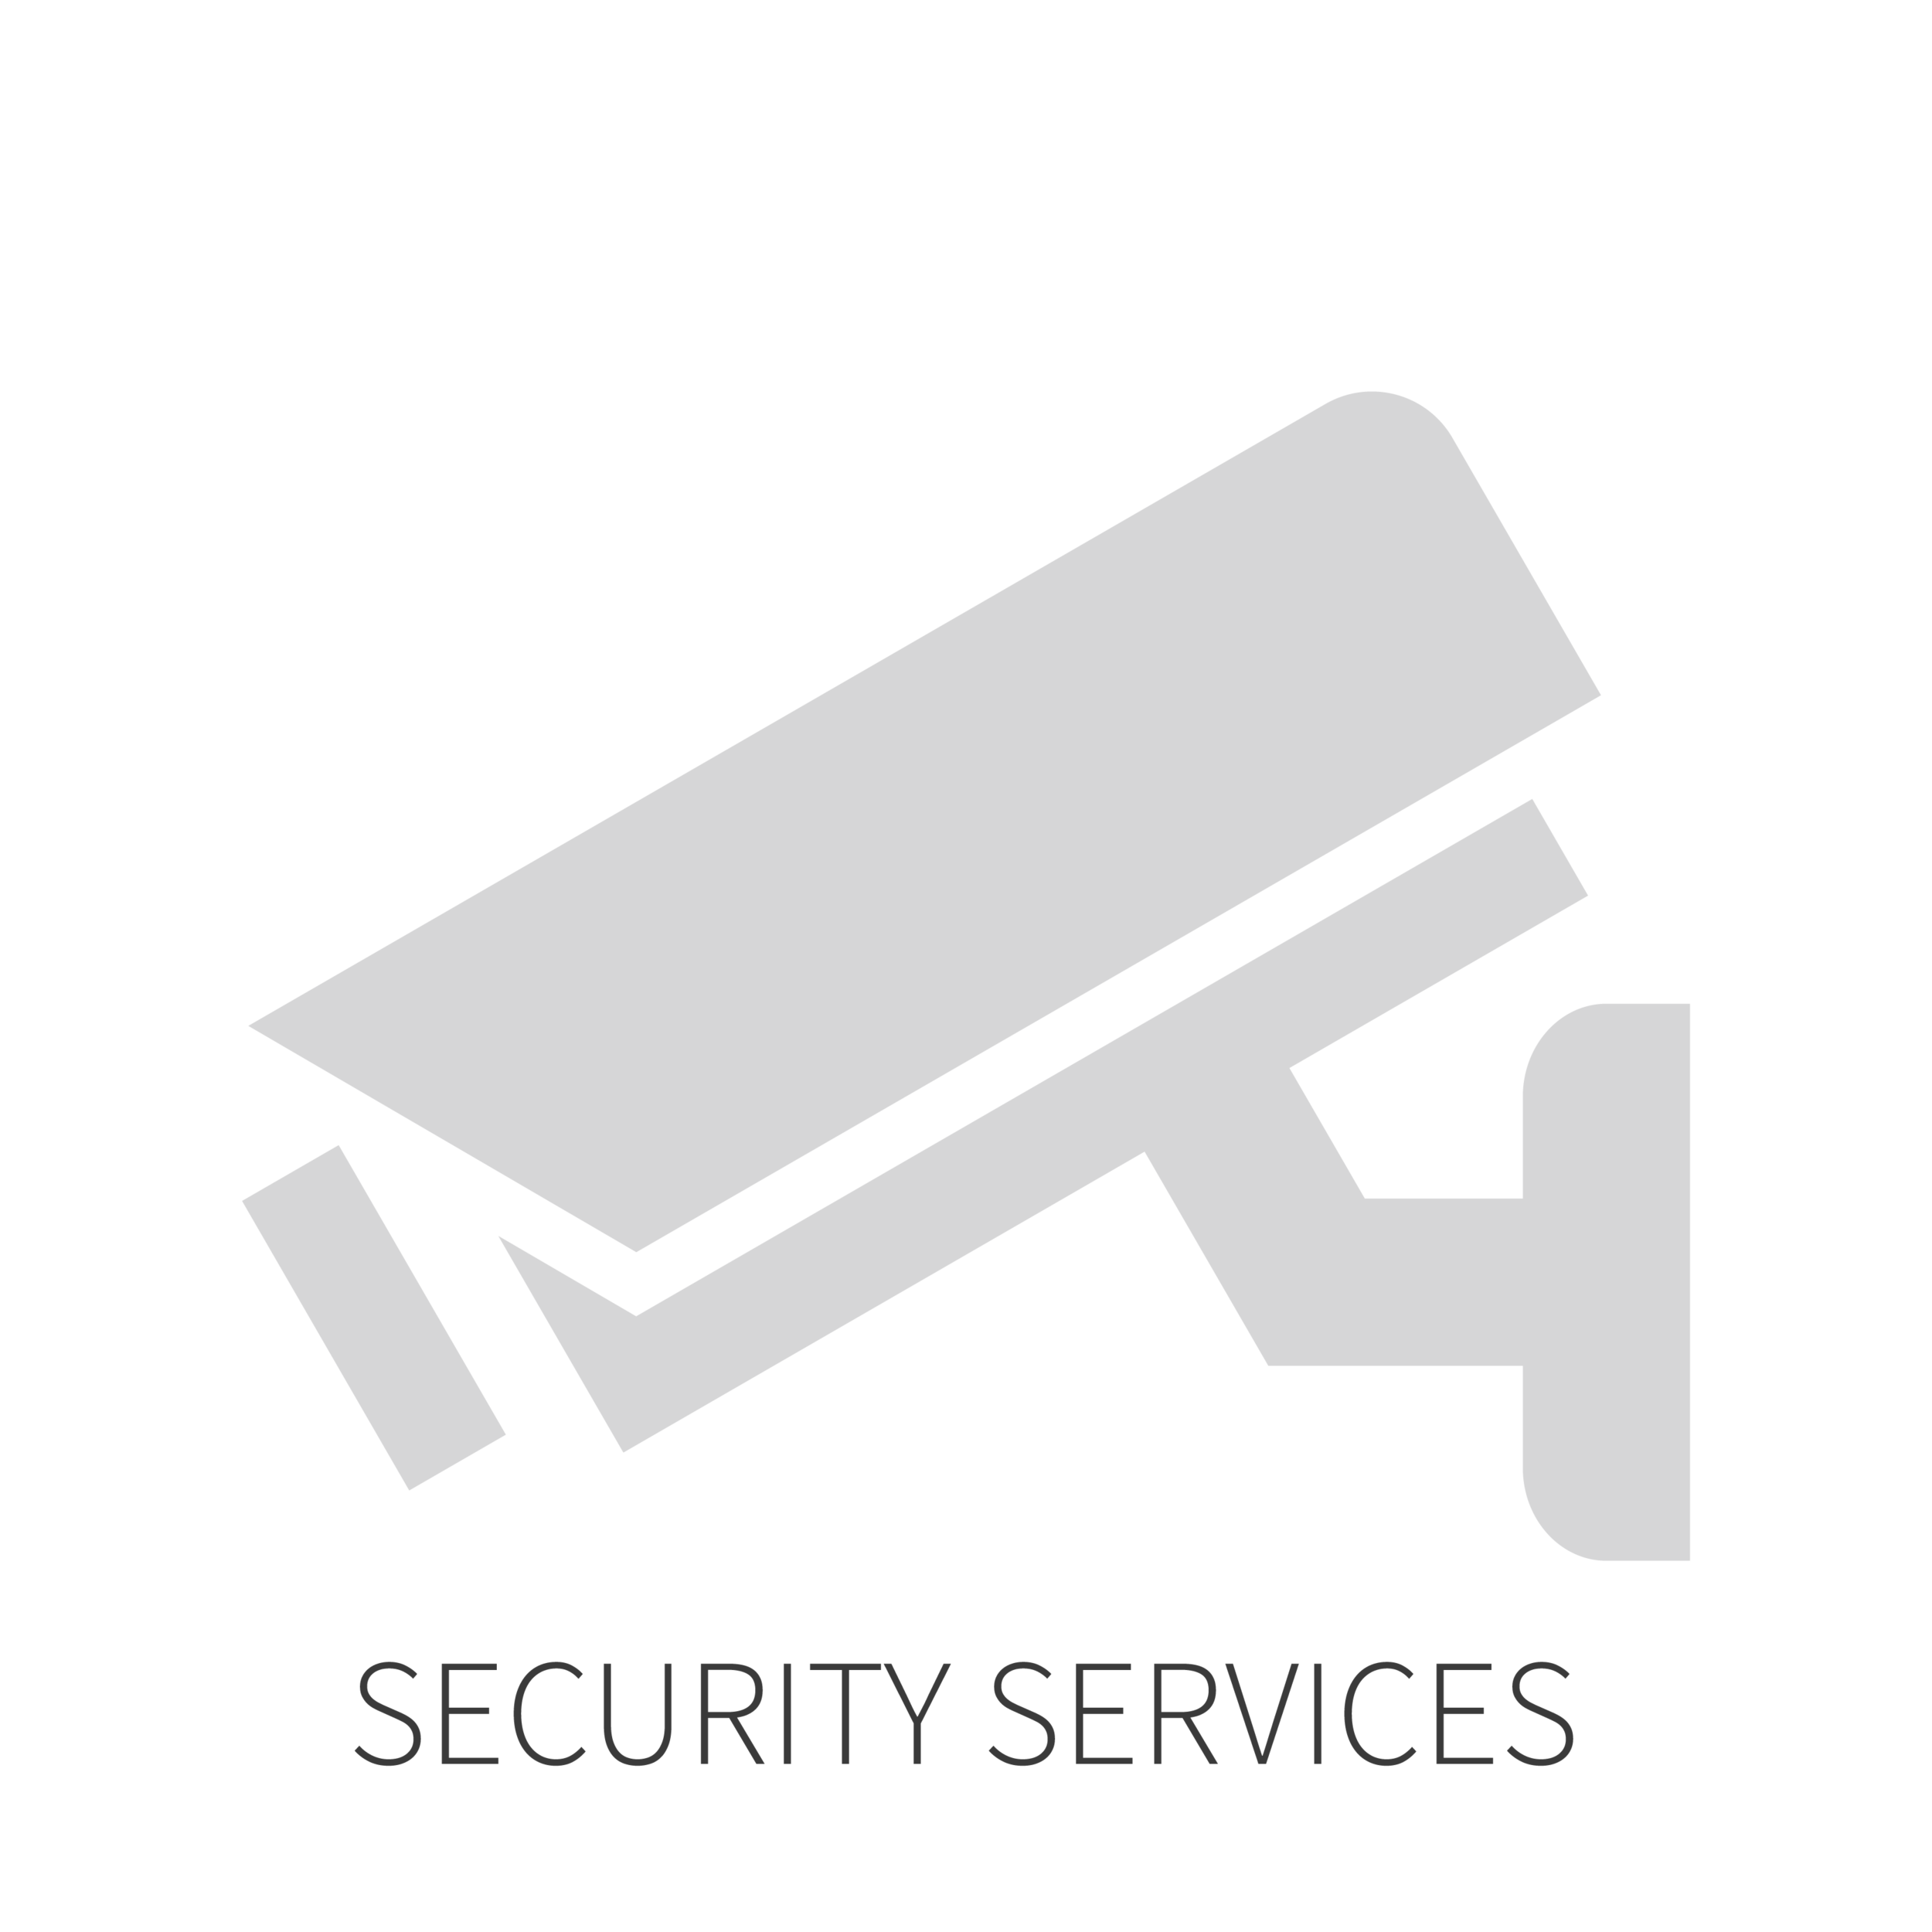 GETSPP_SERVICES_ICONS-02.png